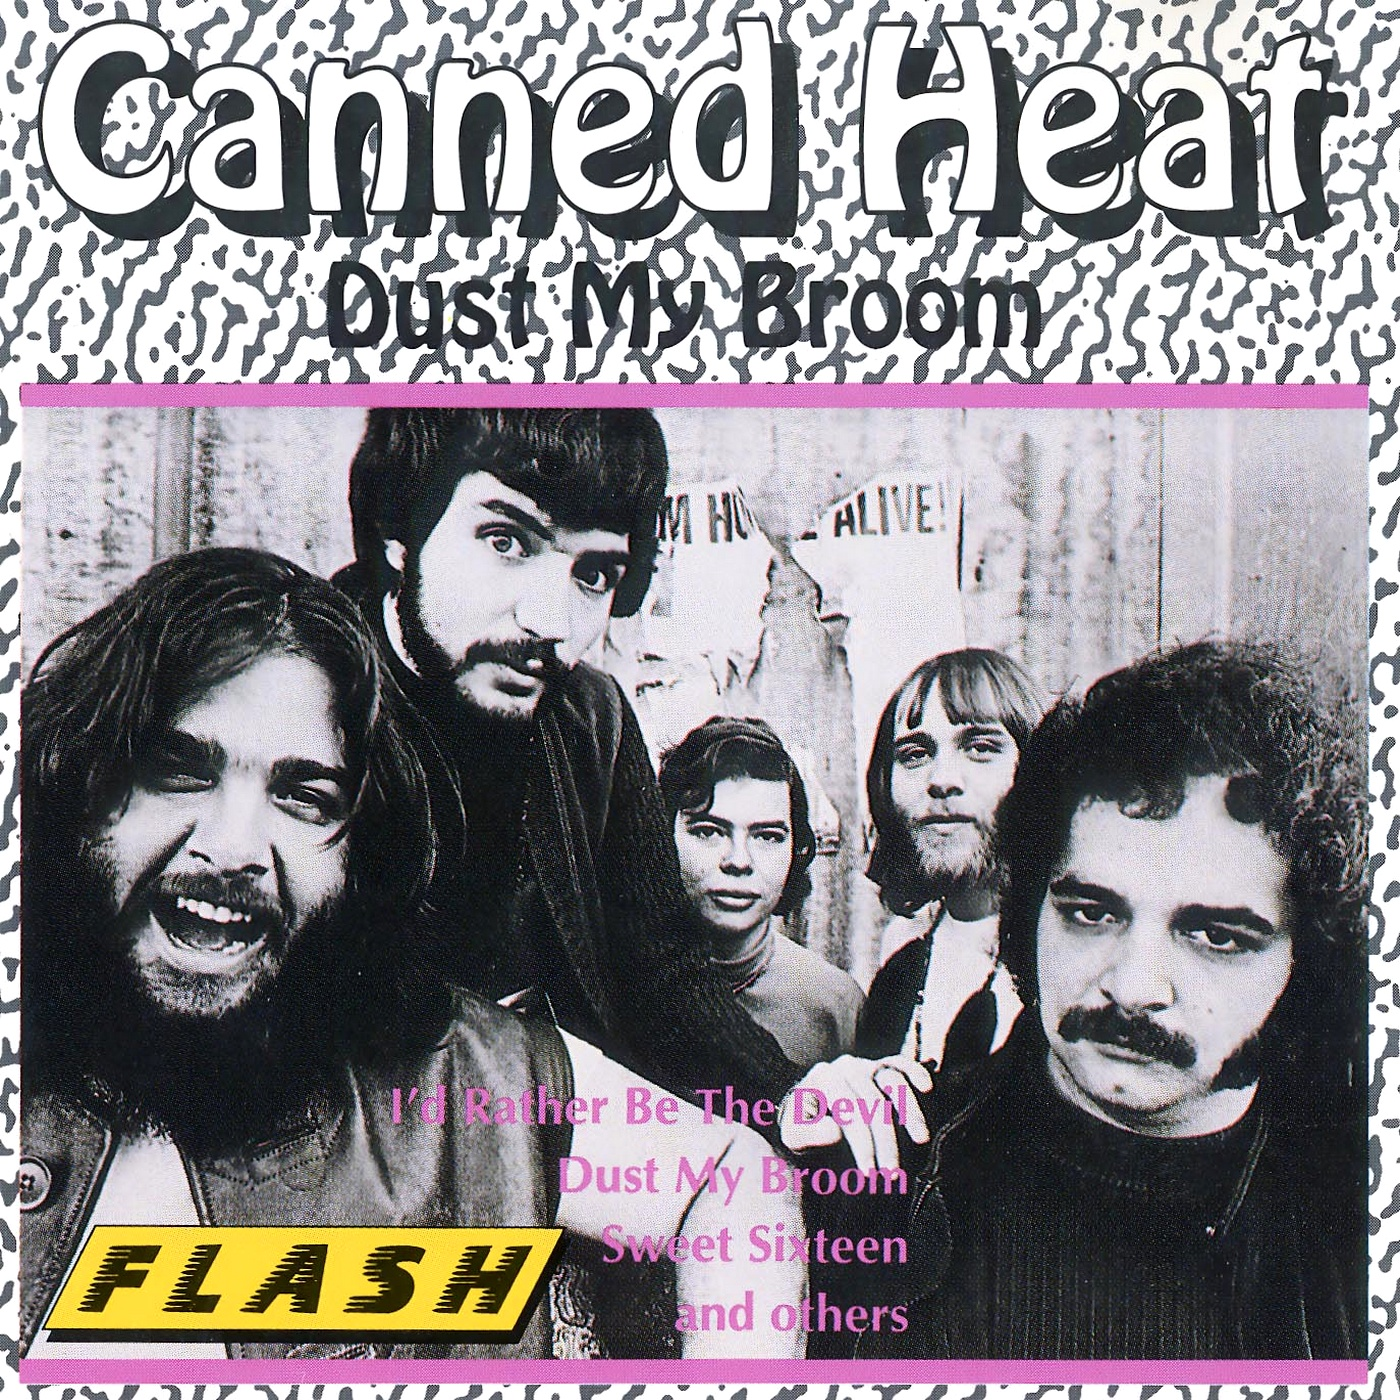 Canned Heat - Dust My Broom (1970)